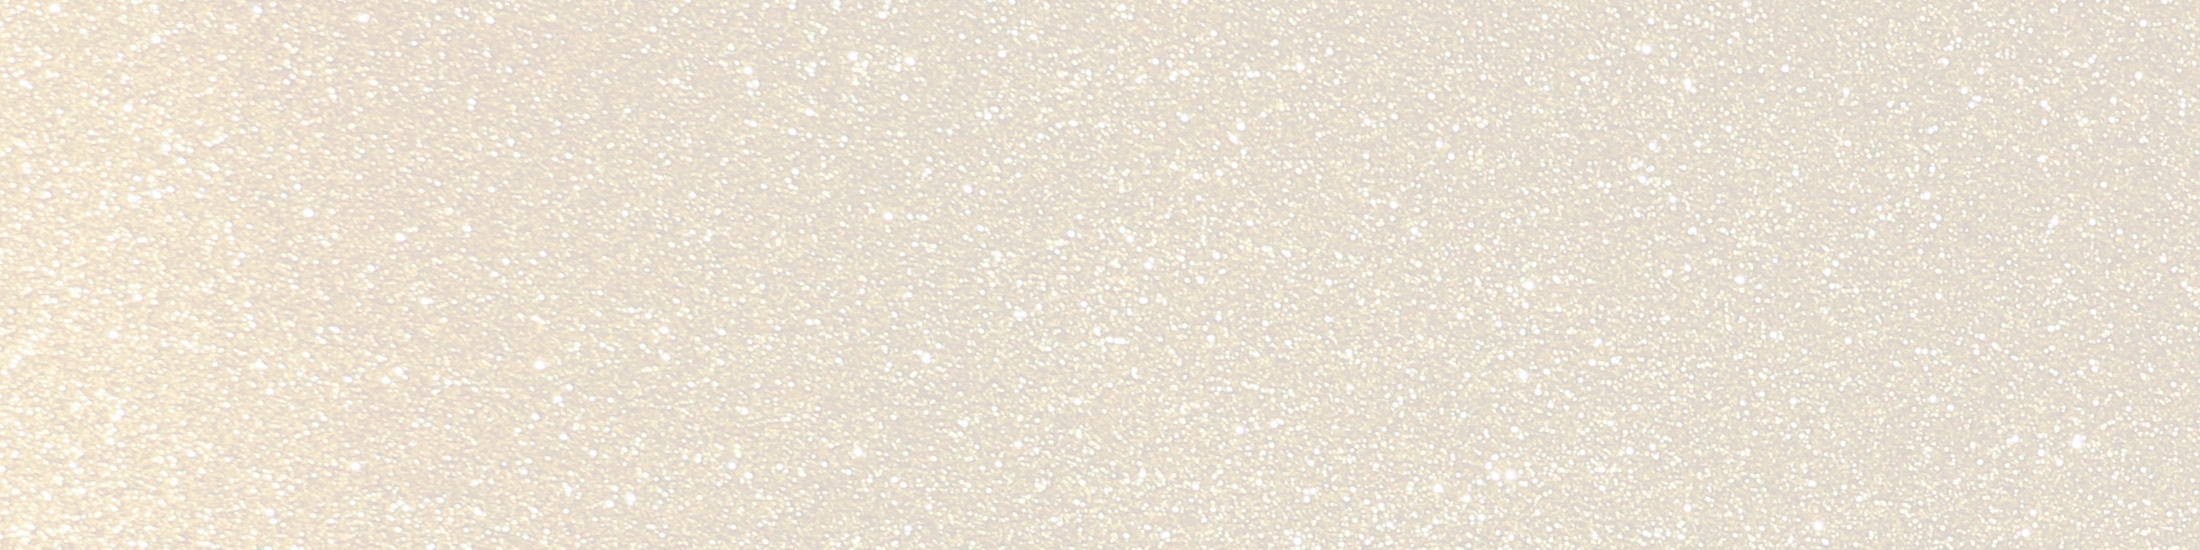 glitter acrylic sheet for laser cutting